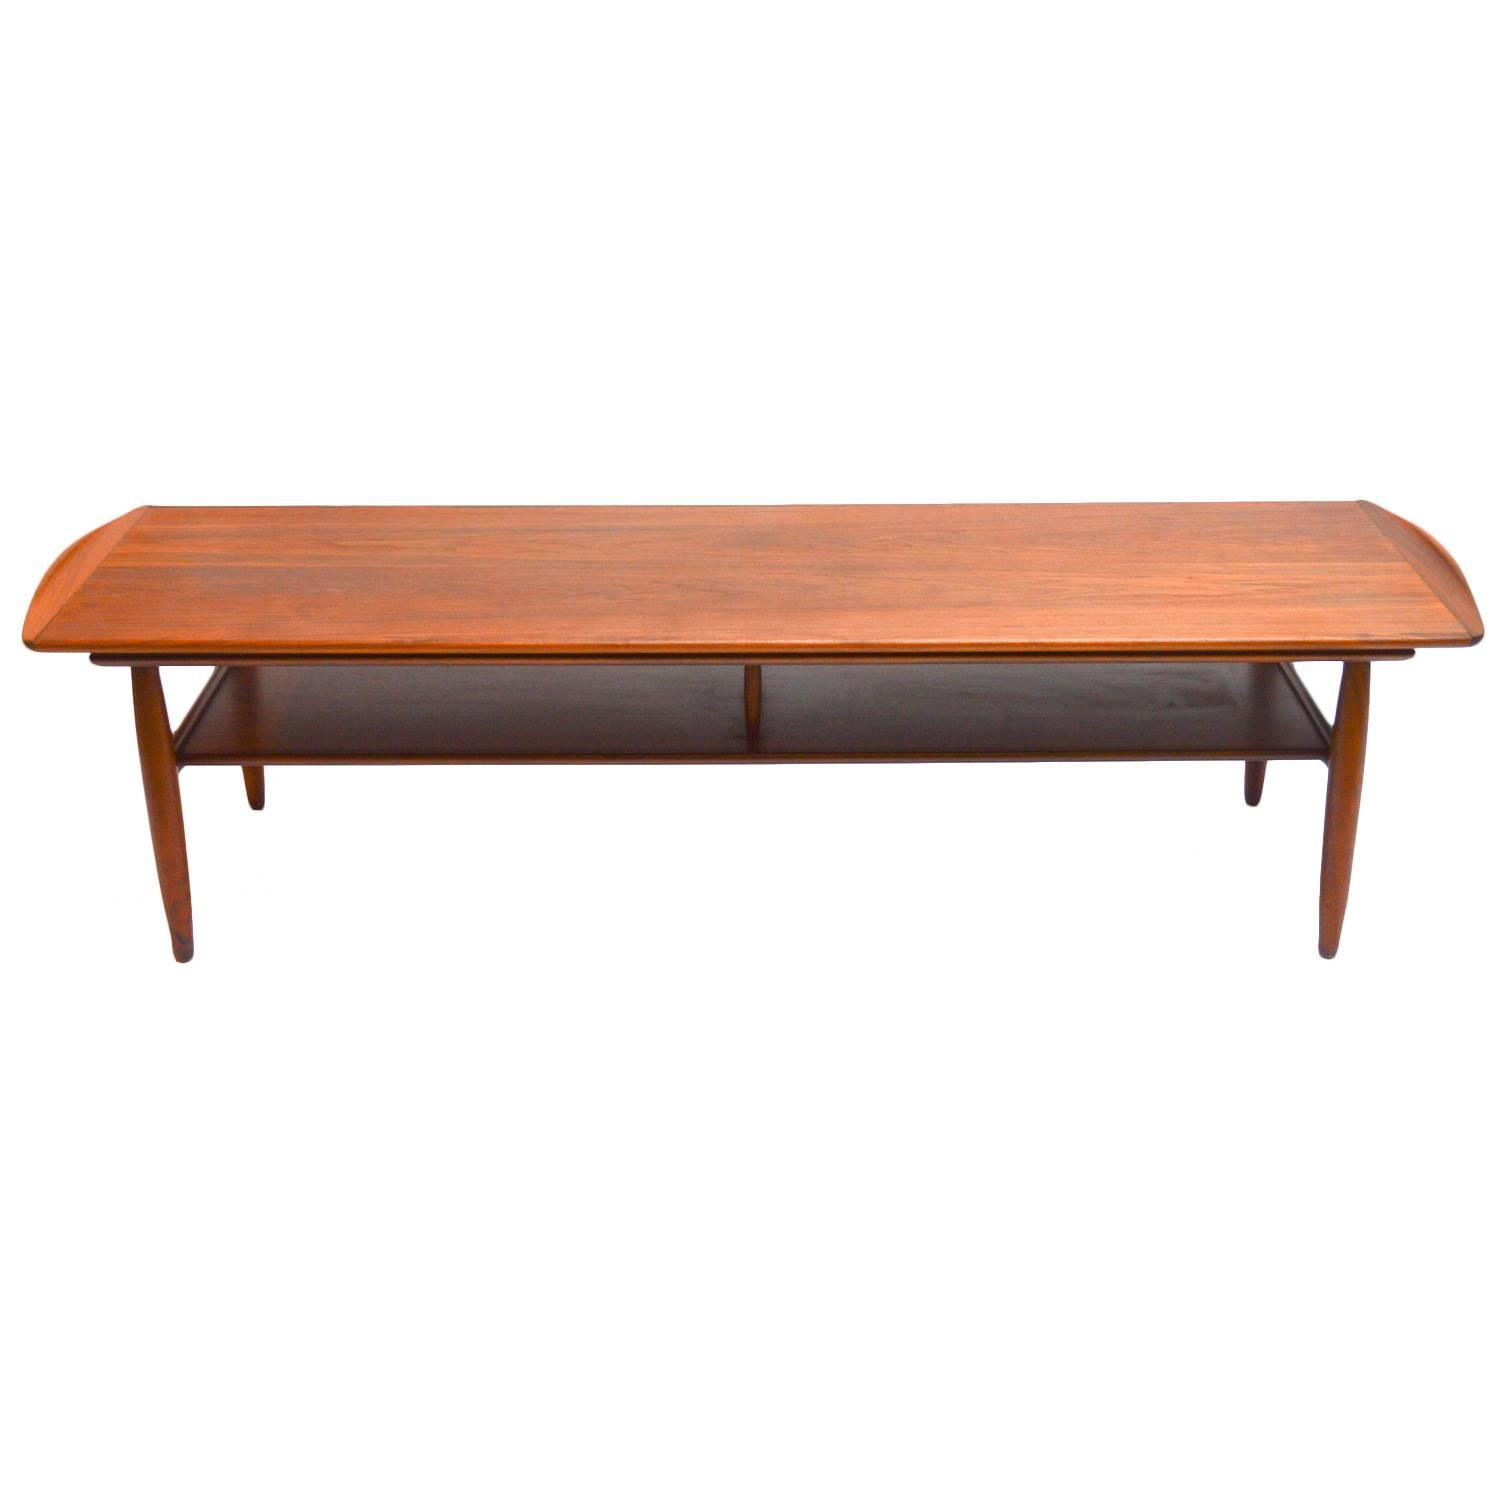 Mid century modern two tiered walnut coffee table at 1stdibs for Modern coffee table